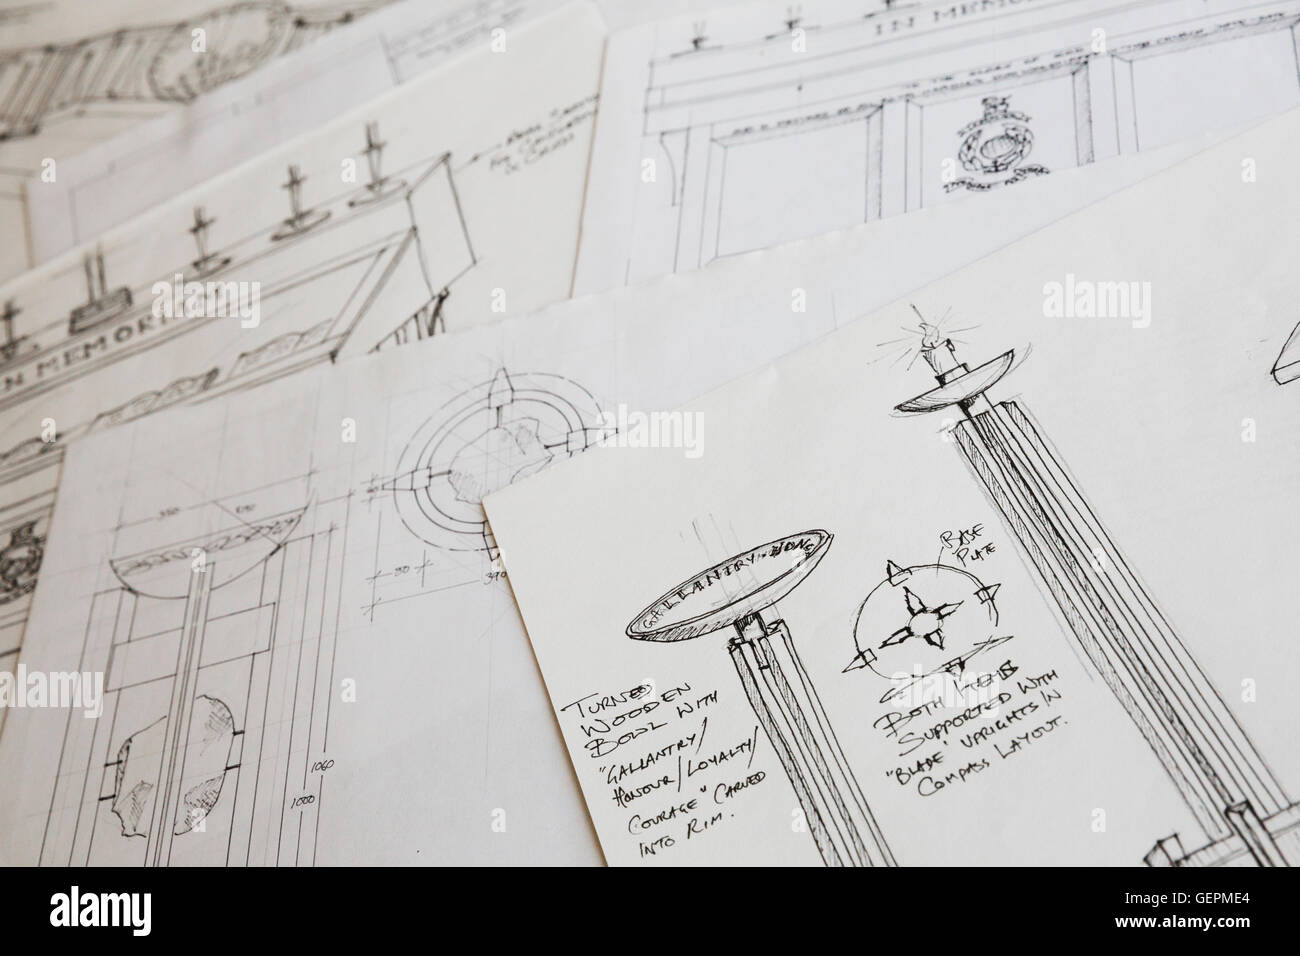 Close Up Of Design Drawings For A Carved Wooden Bowl On A Stand